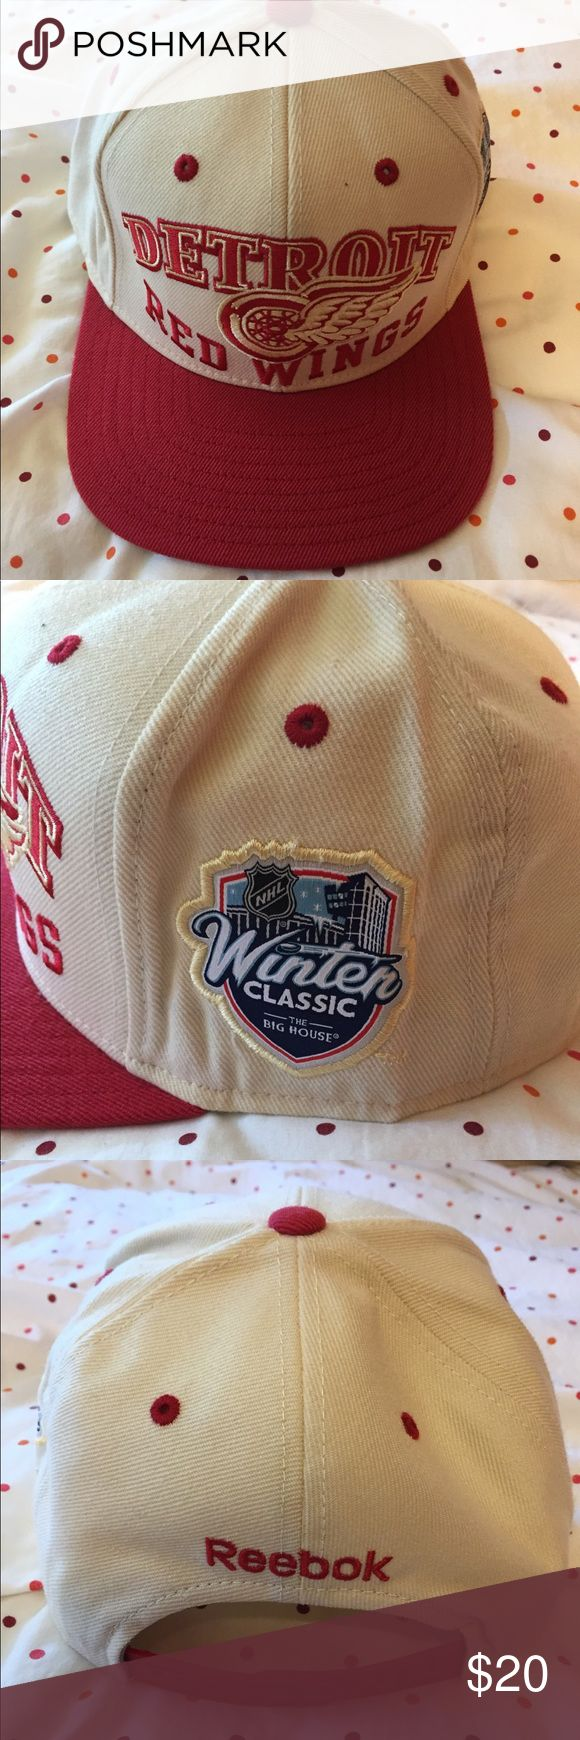 Detroit Red Wings Reebok Winter Classic snapback Selling this Detroit Red Wings retro NHL Reebok Winter Classic snapback. Reebok Accessories Hats